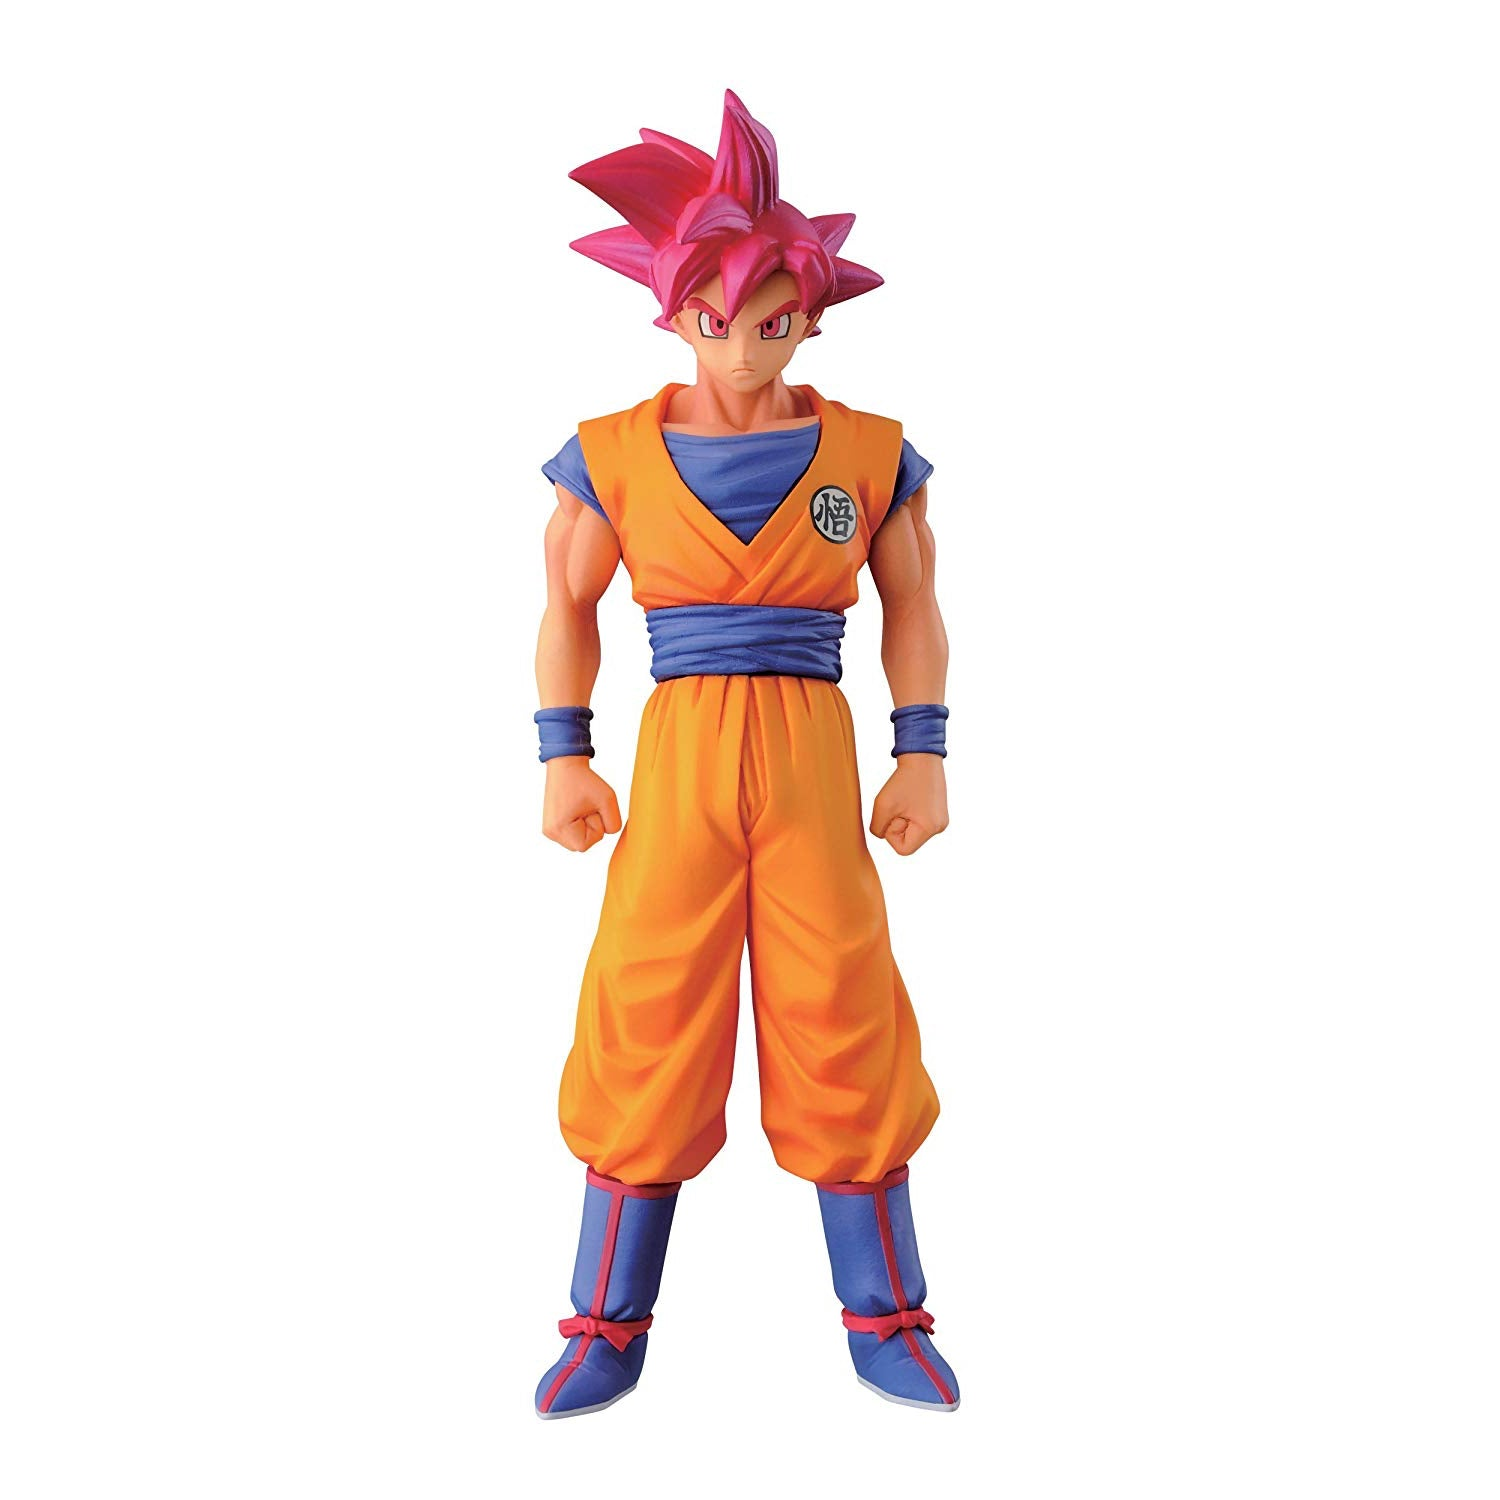 "Banpresto Dragon Ball Z 5.9"" Super Saiyan God Son Goku Figure, Chozousyu Series"